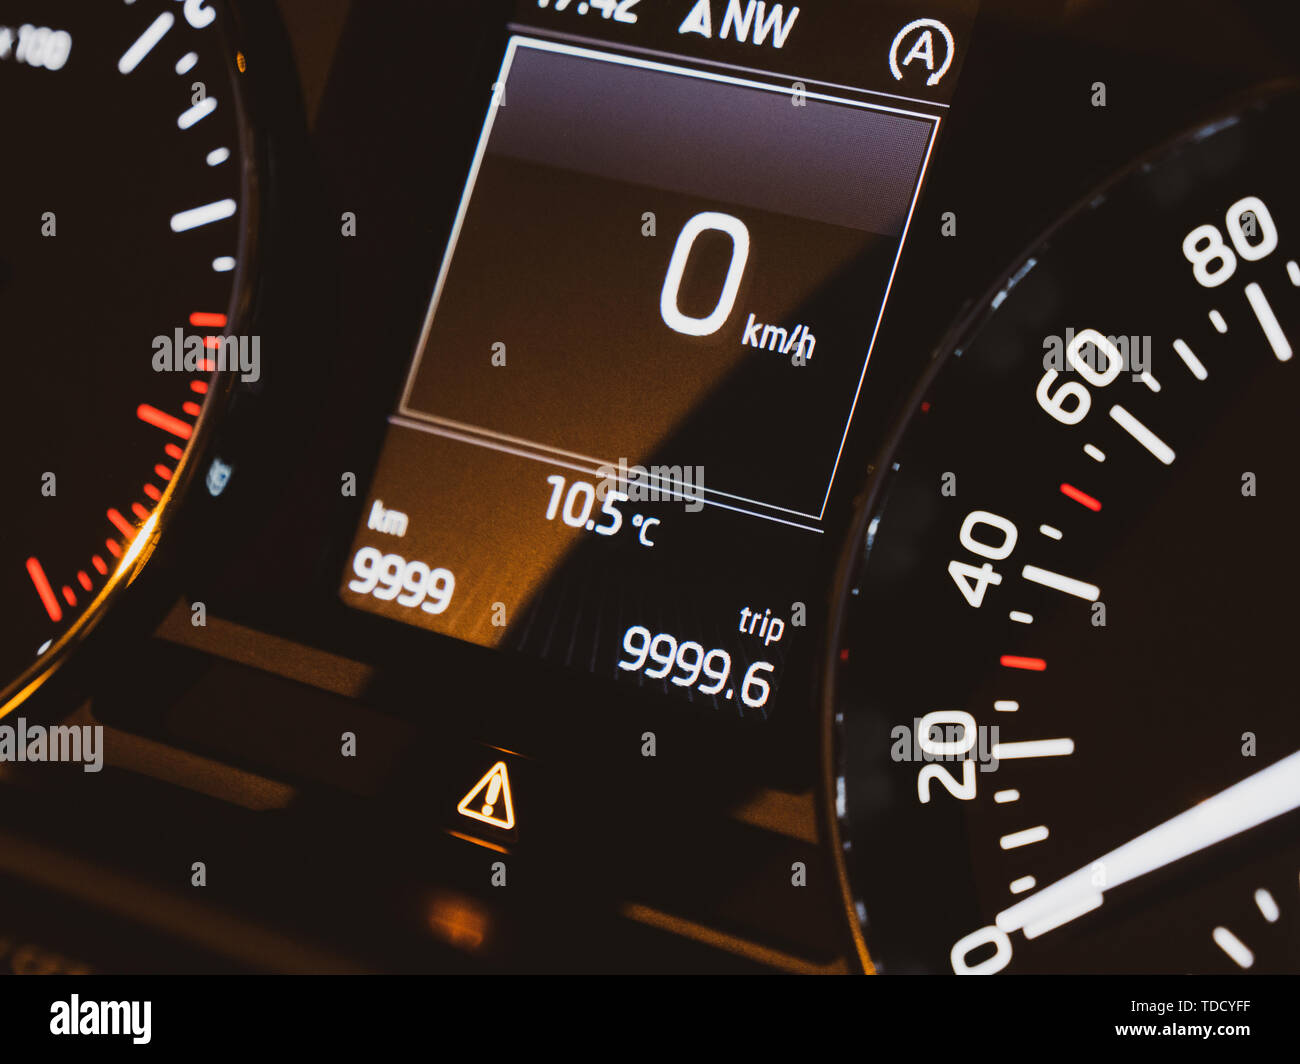 Stationary new modern car speedometer dashboard with 0 kmh current speed on the dot matrix display screen - Stock Image